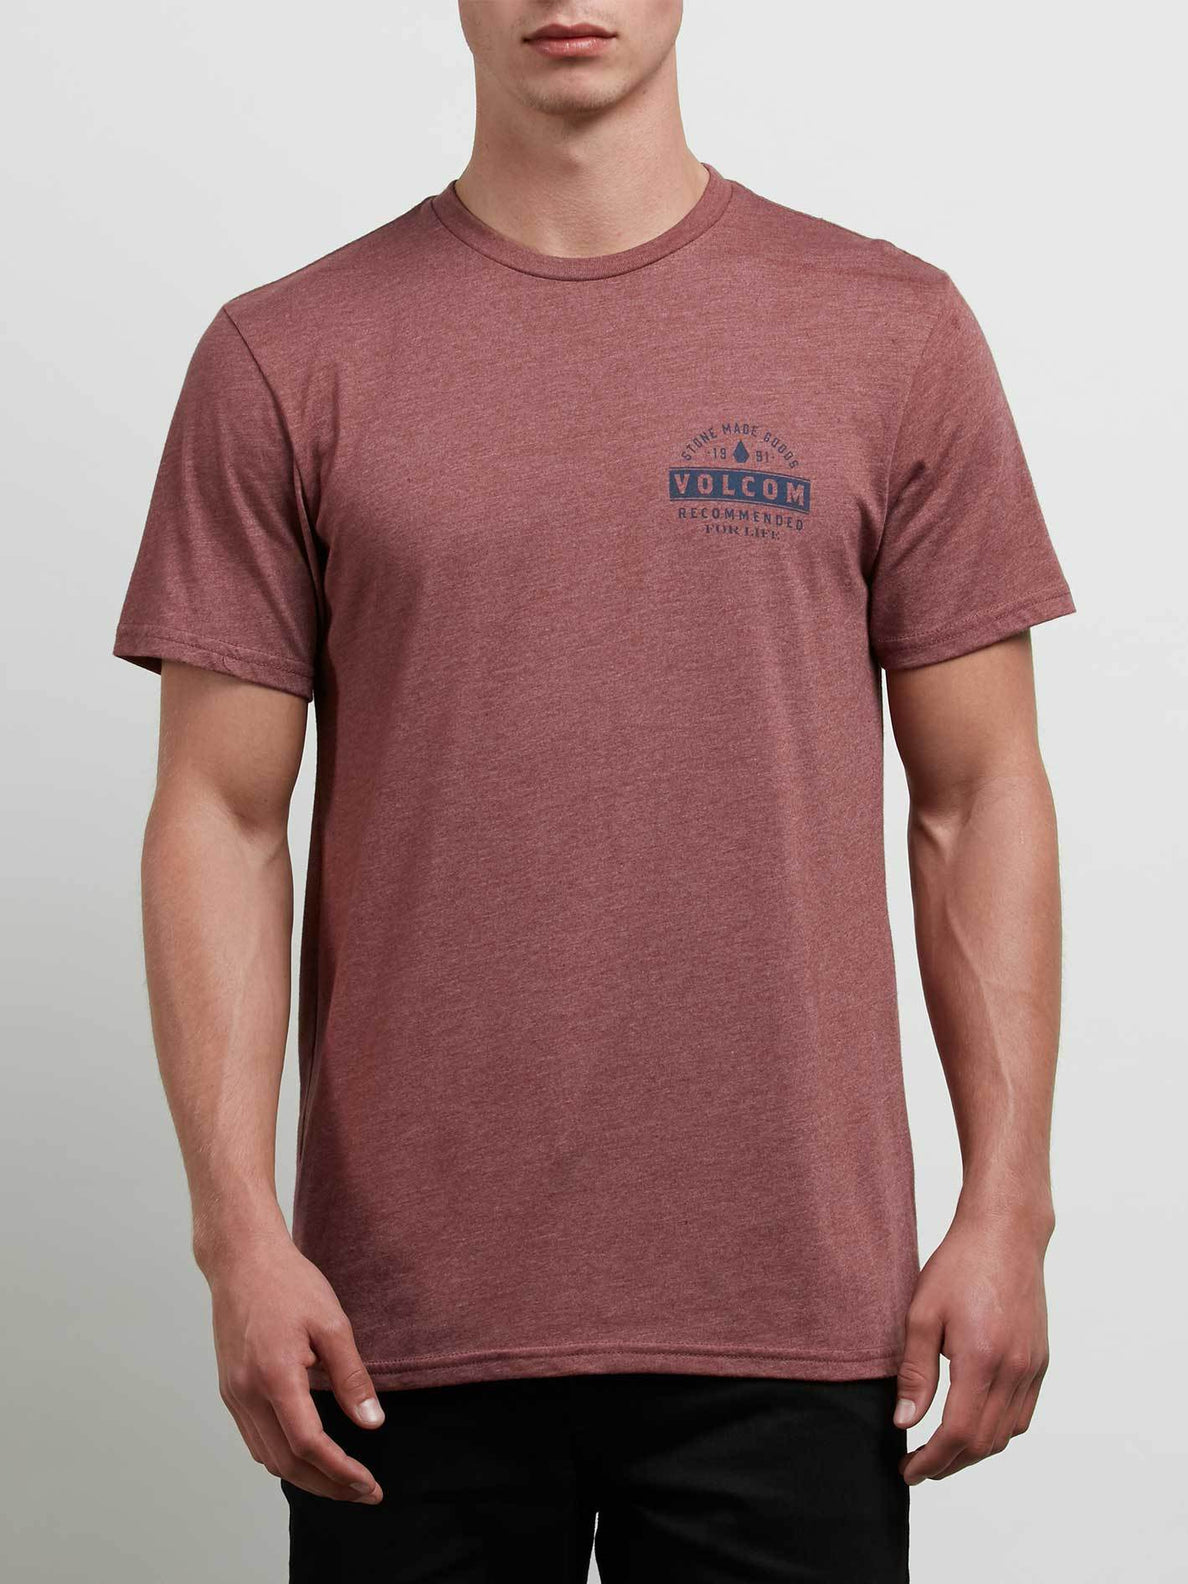 Barred Tee In Crimson, Front View